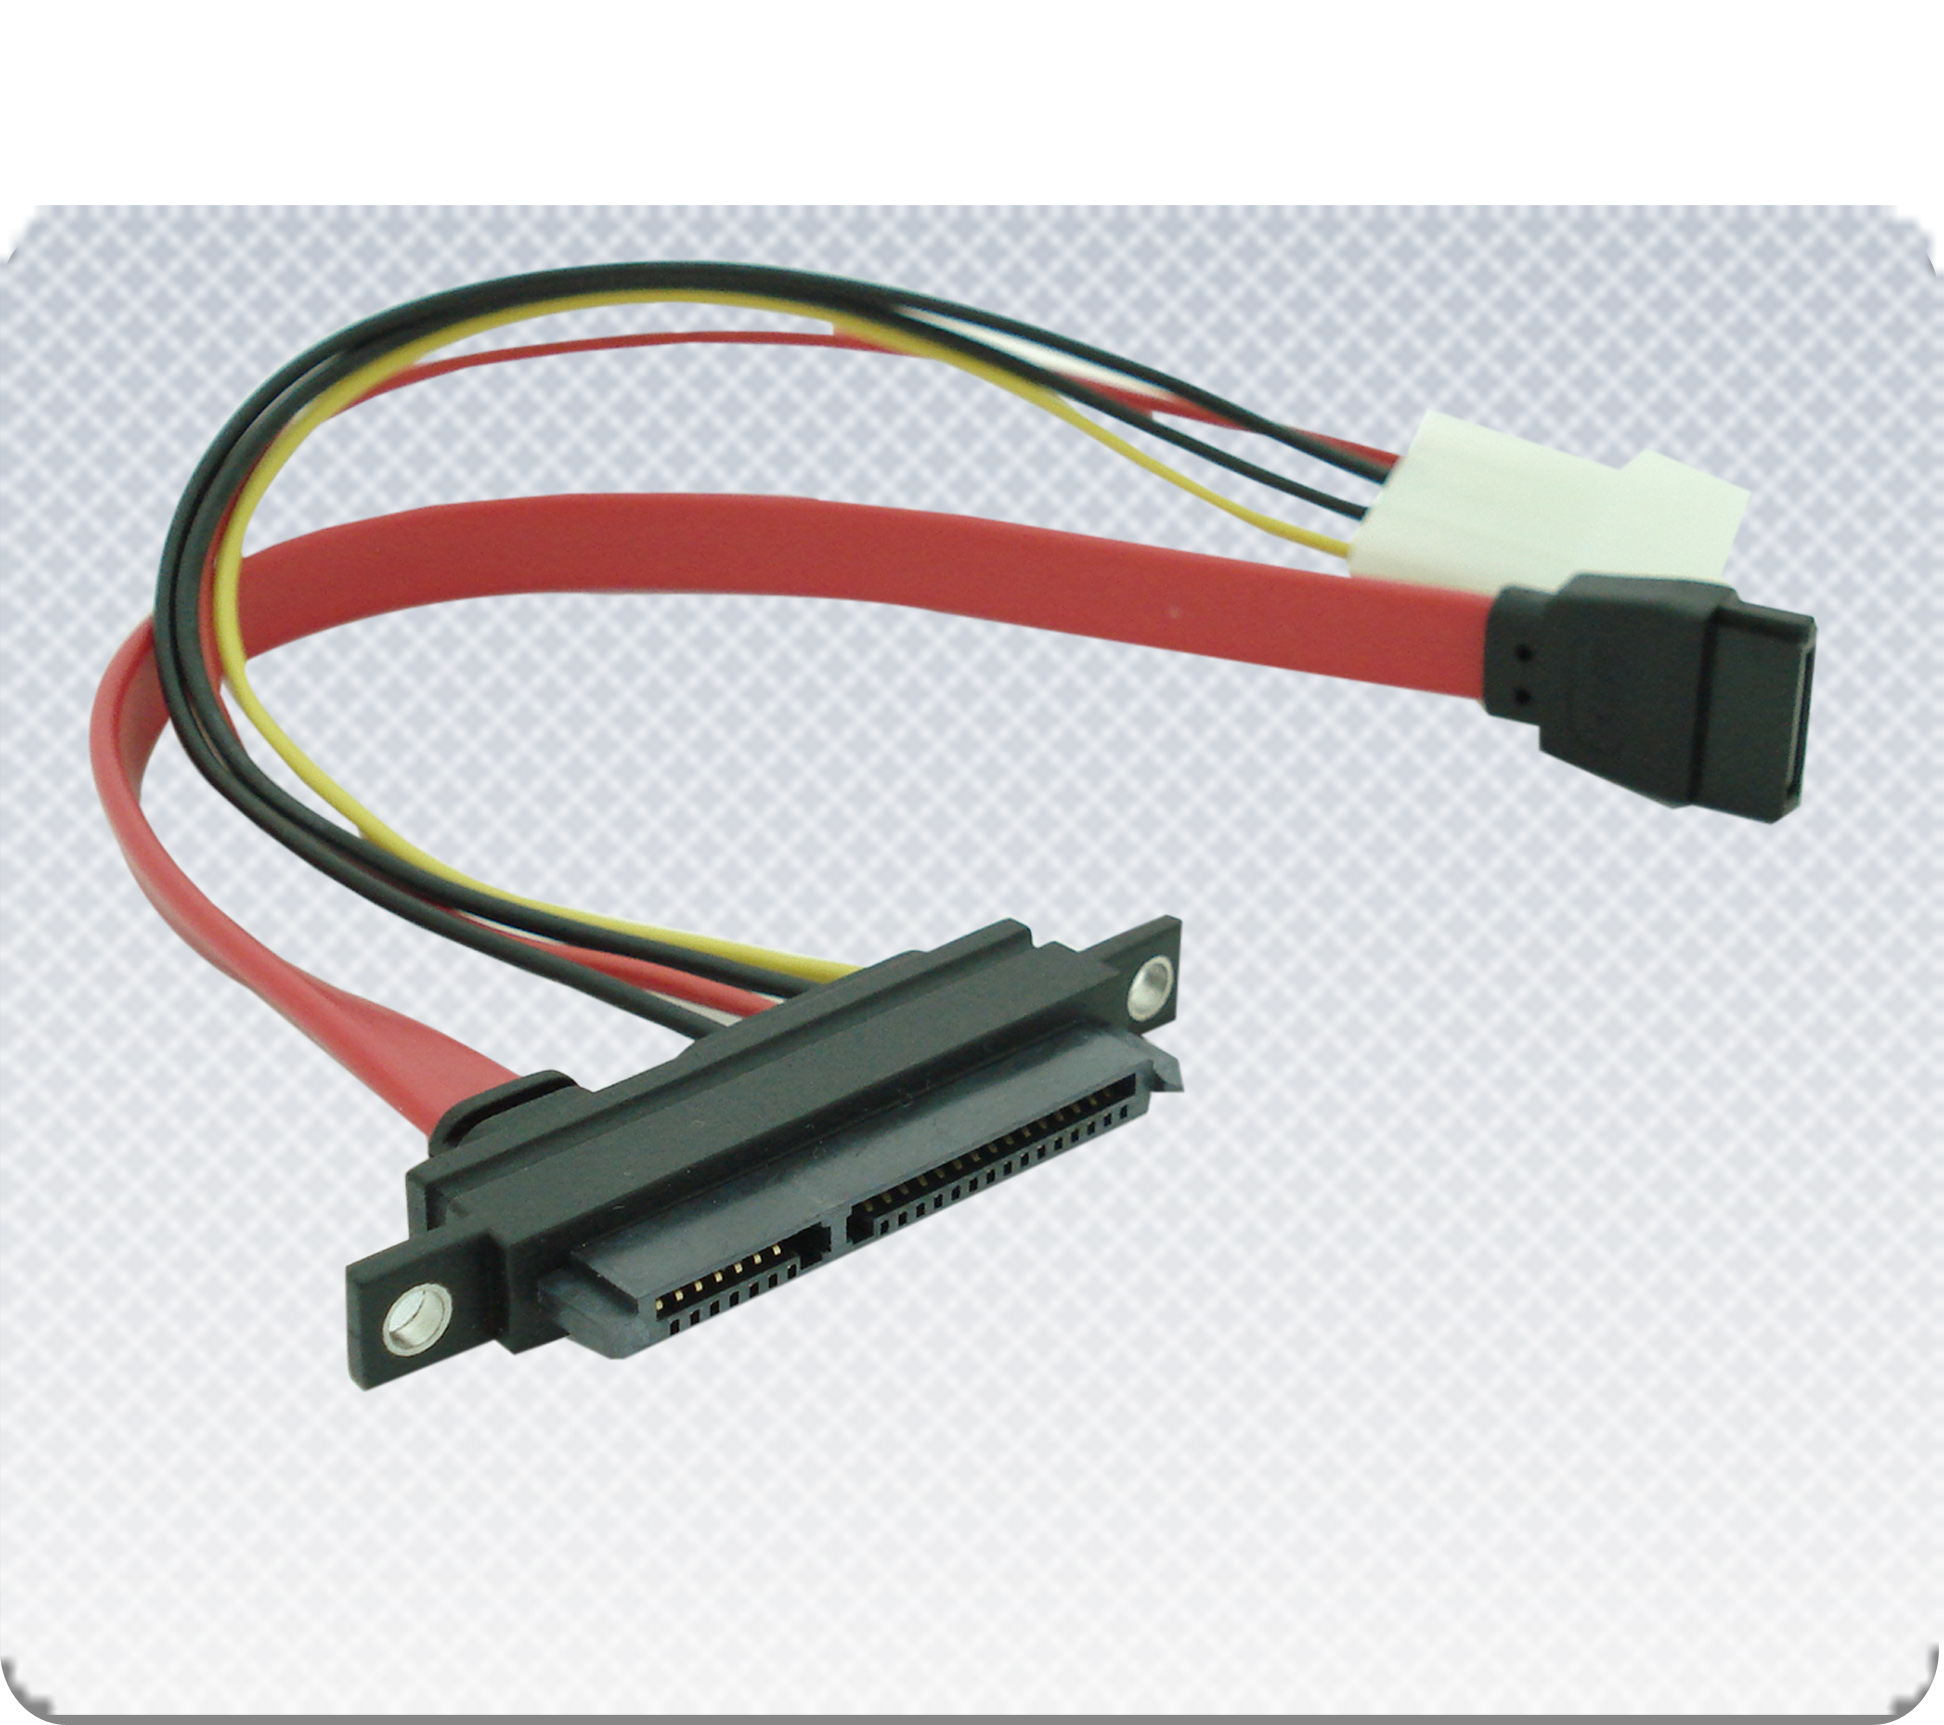 Wiring Harness Manufacturer Supplier Products Granpro Sata Cable